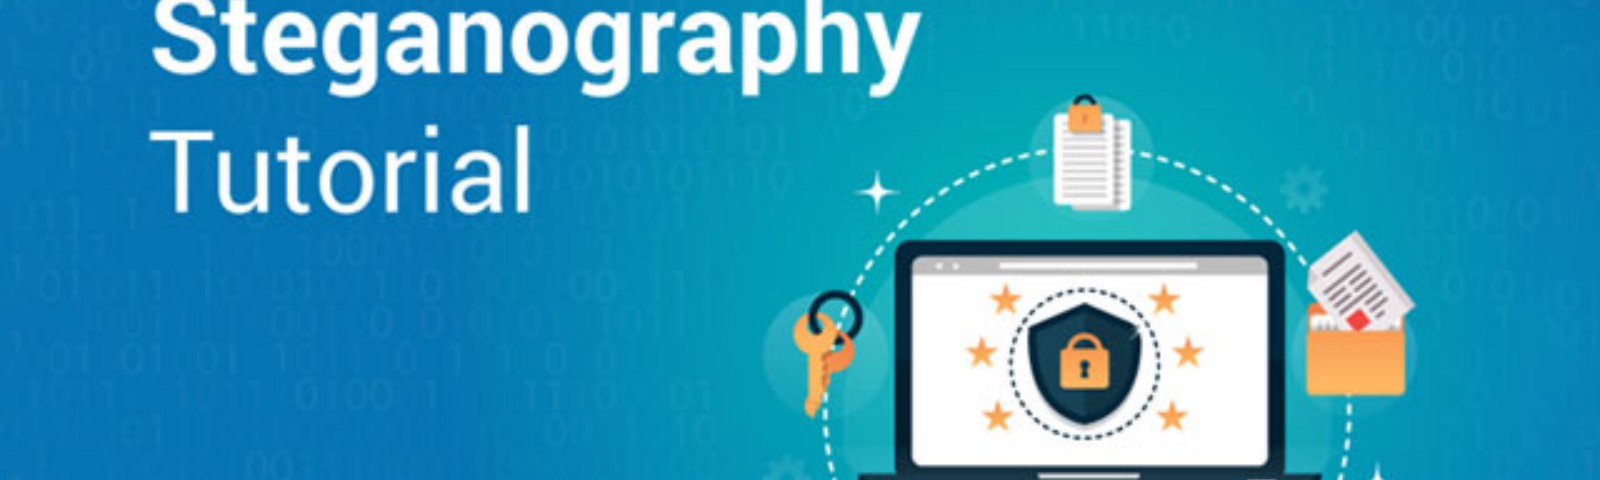 Steganography Tutorial   A Complete Guide For Beginners